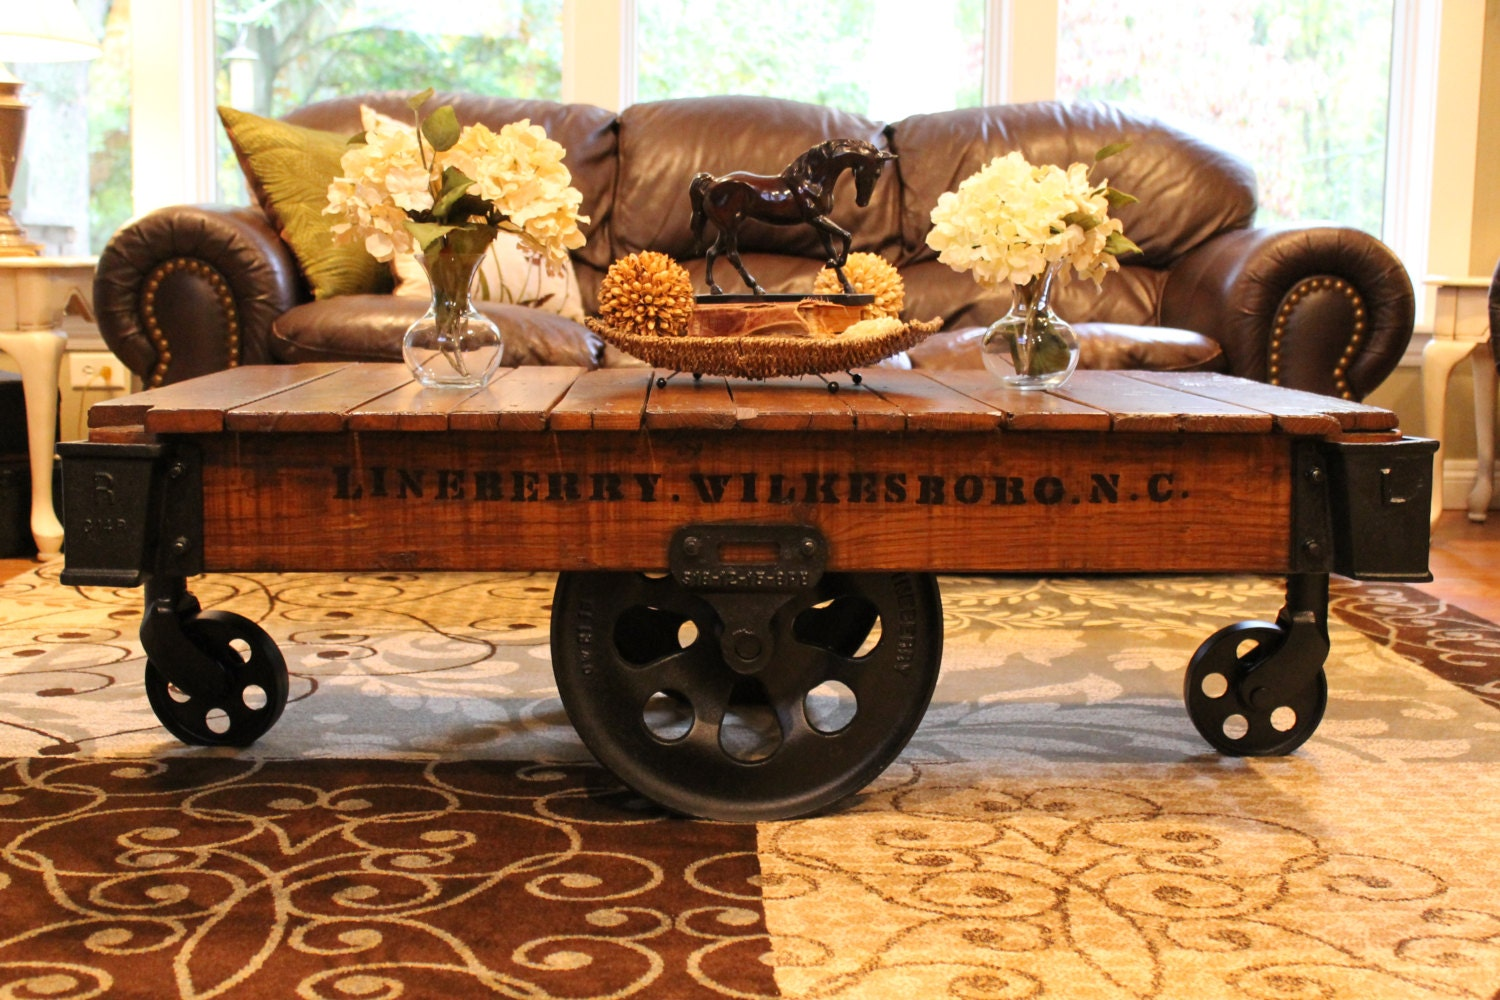 Vintage Restored Lineberry Factory Cart Coffee Table By Keeriah